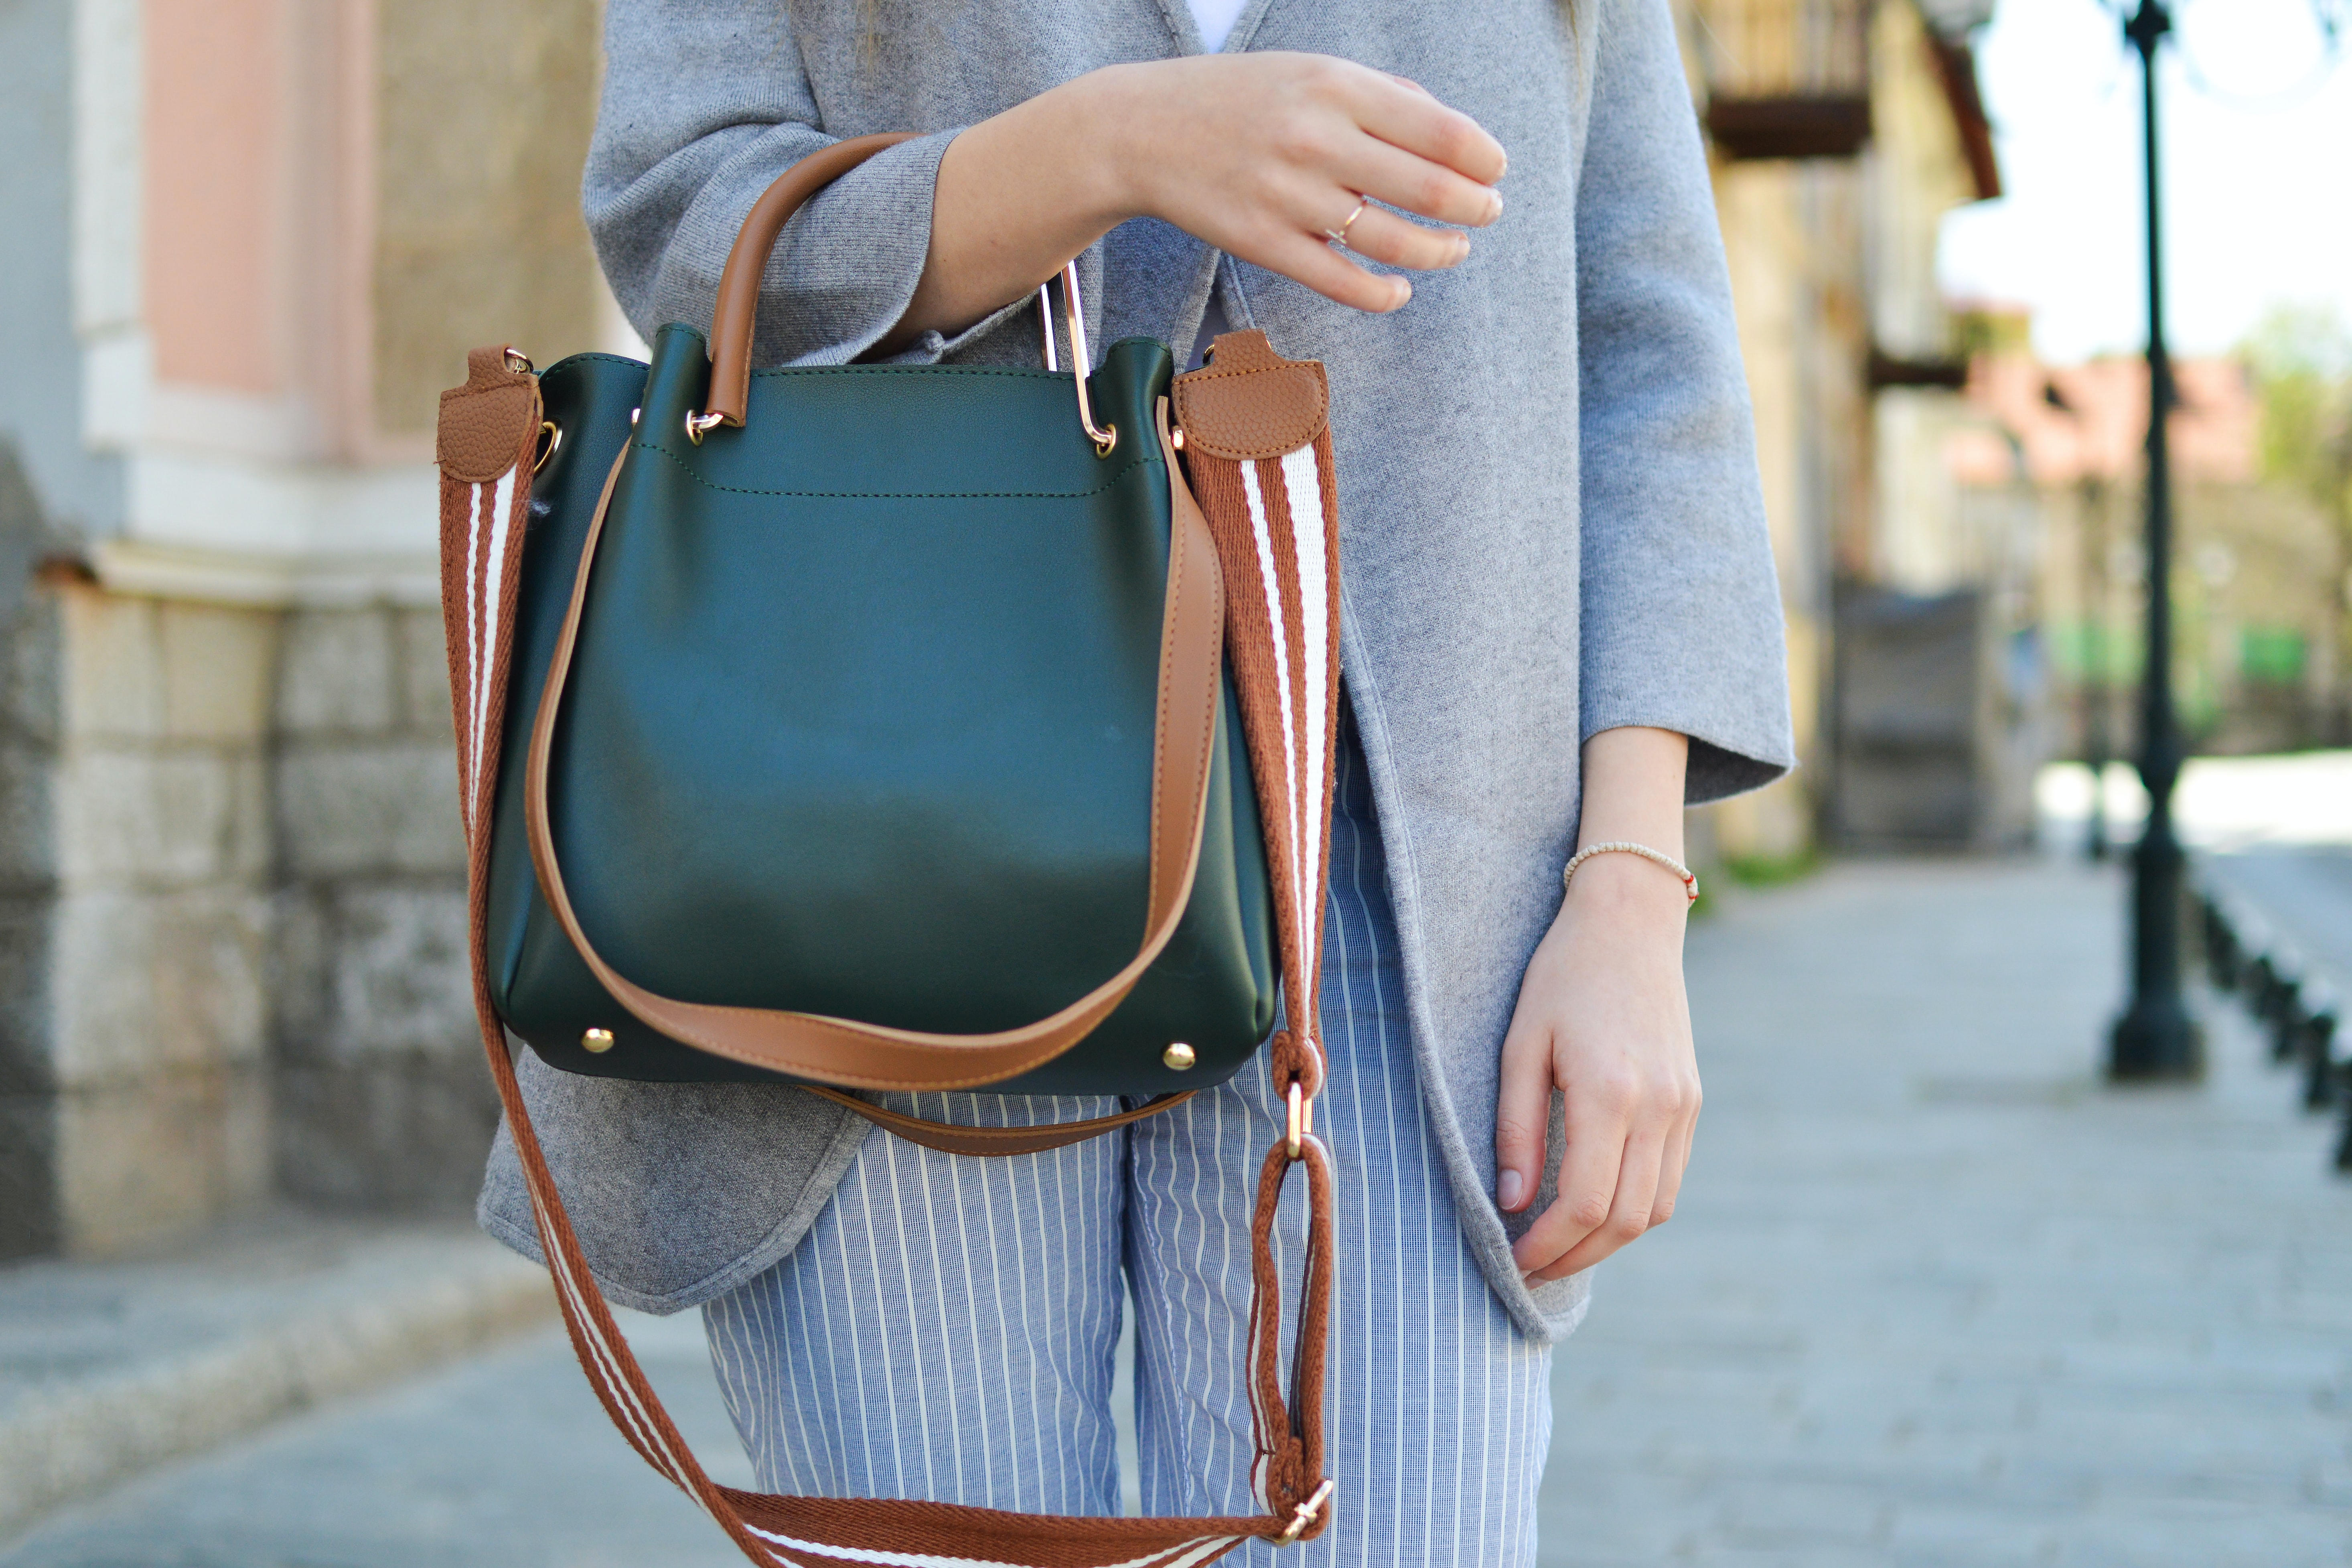 women standing while carrying green and brown leather 2-way shoulder bag